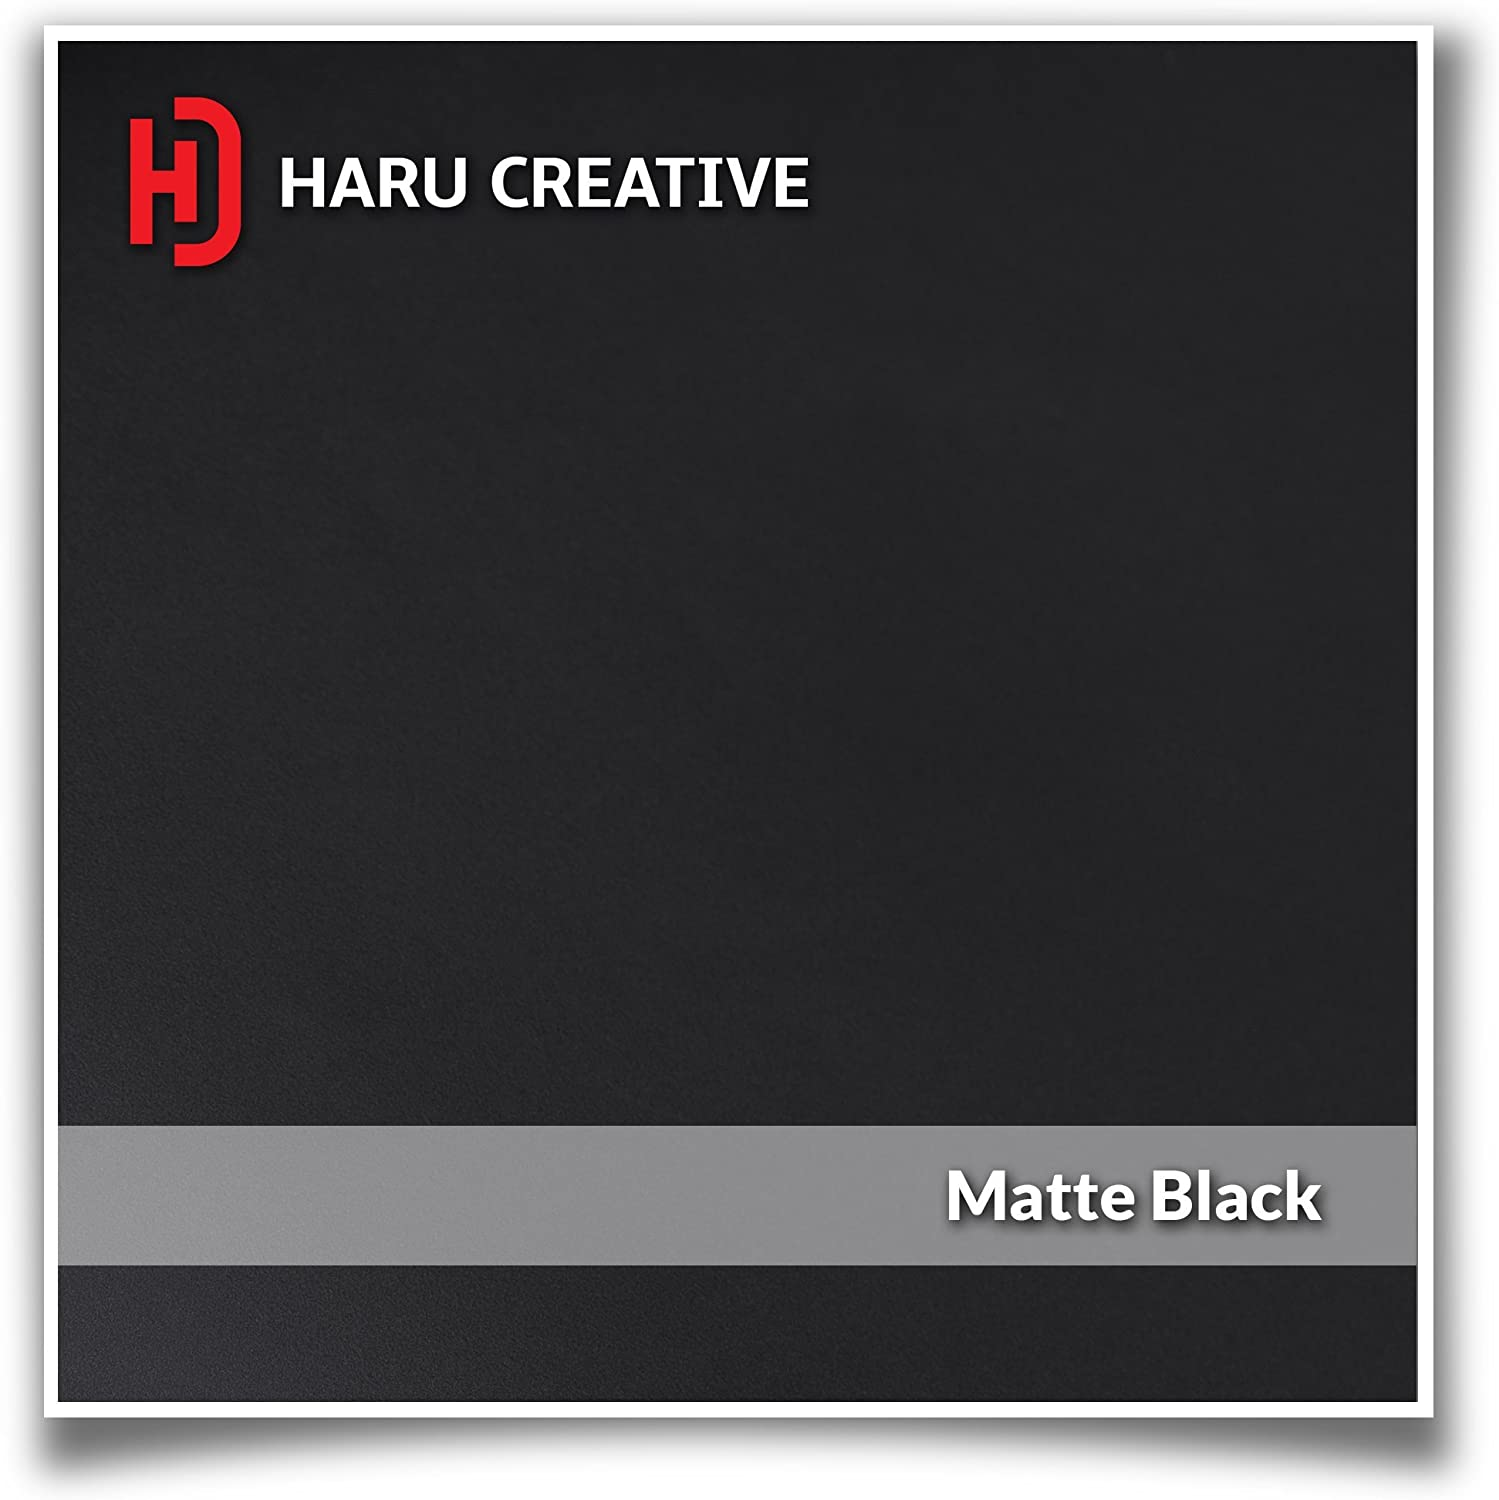 Haru Creative Matte Black Rear Trunk Tailgate Letter Insert Decal Sticker Compatible with and Fits Toyota Tacoma 2016 2017 2018 2019